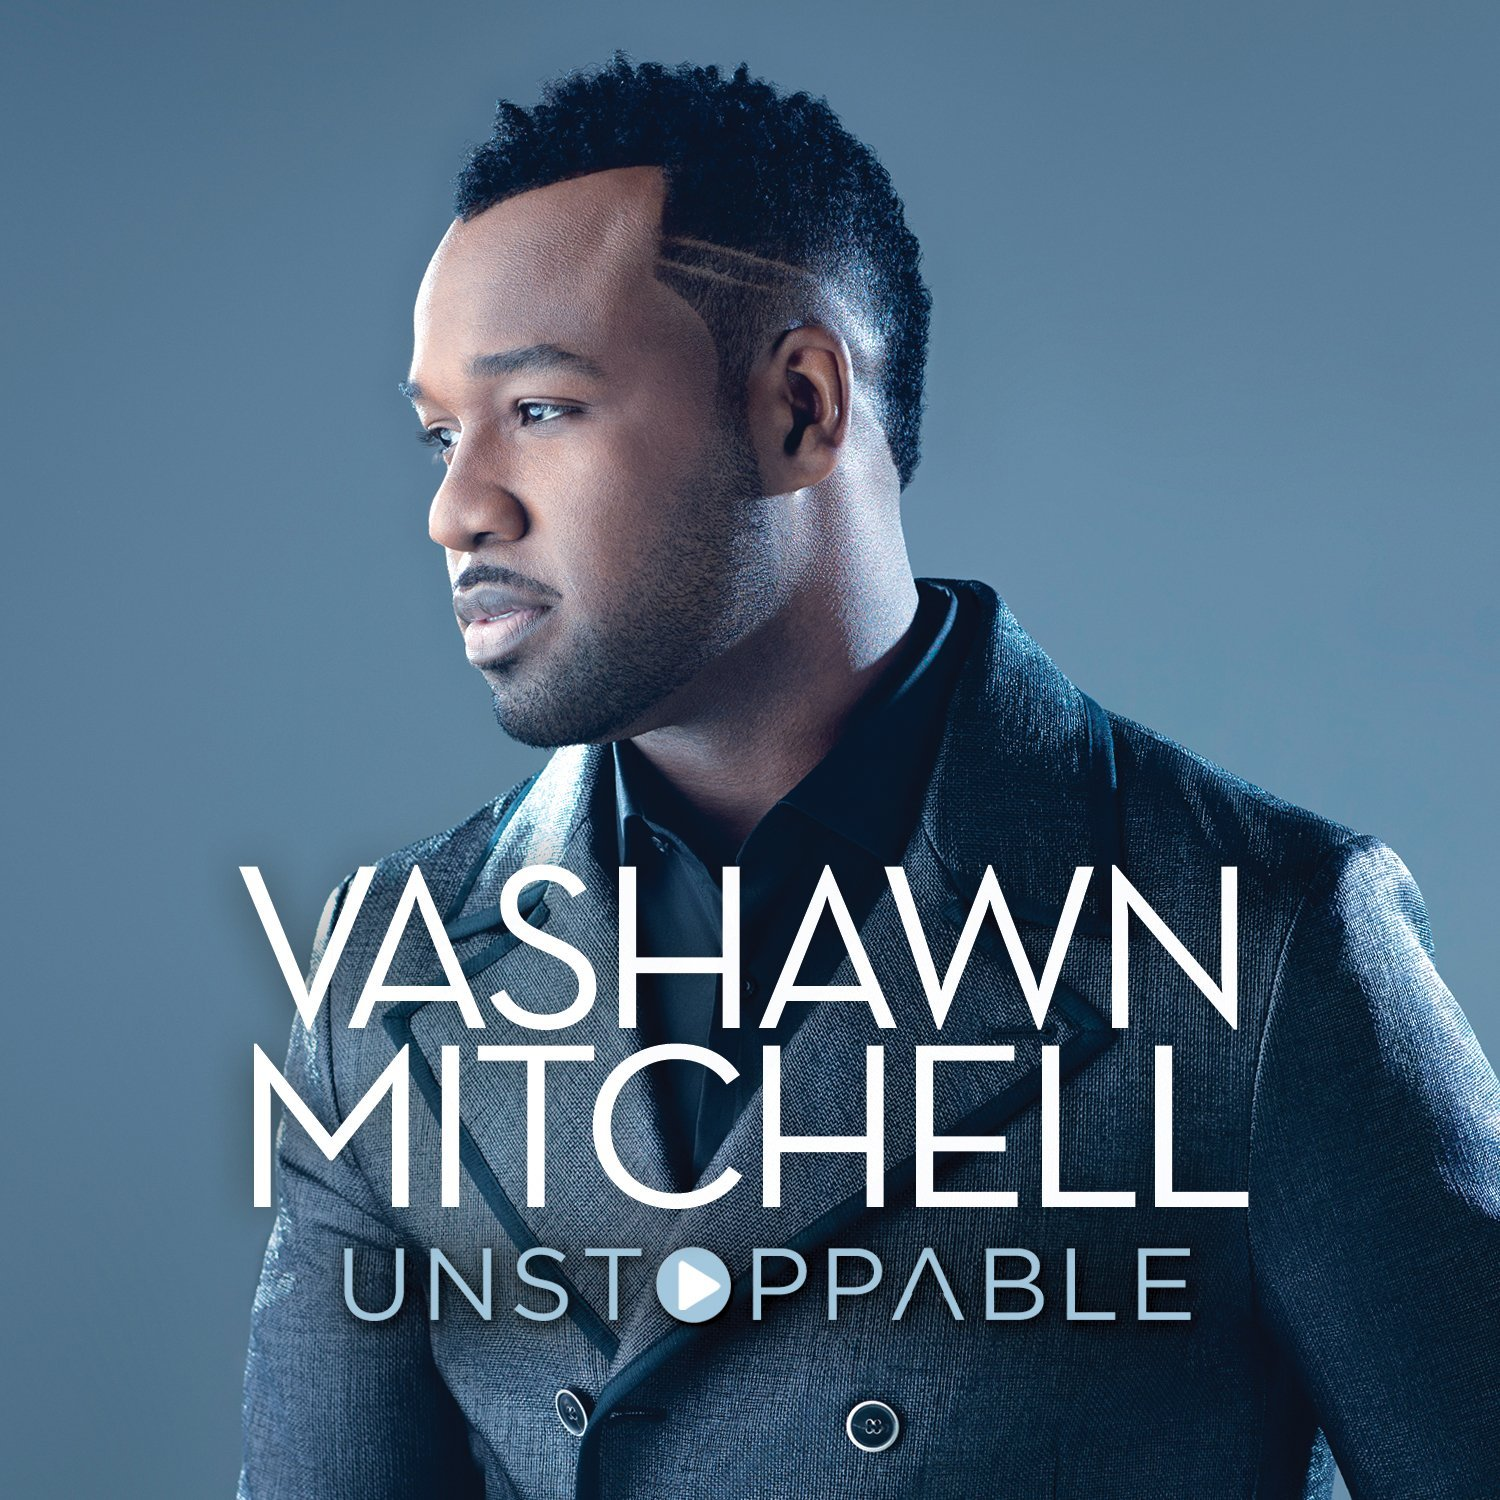 2014 BLACK GOSPEL SONGS - VaShawn Mitchell Releases his 7th